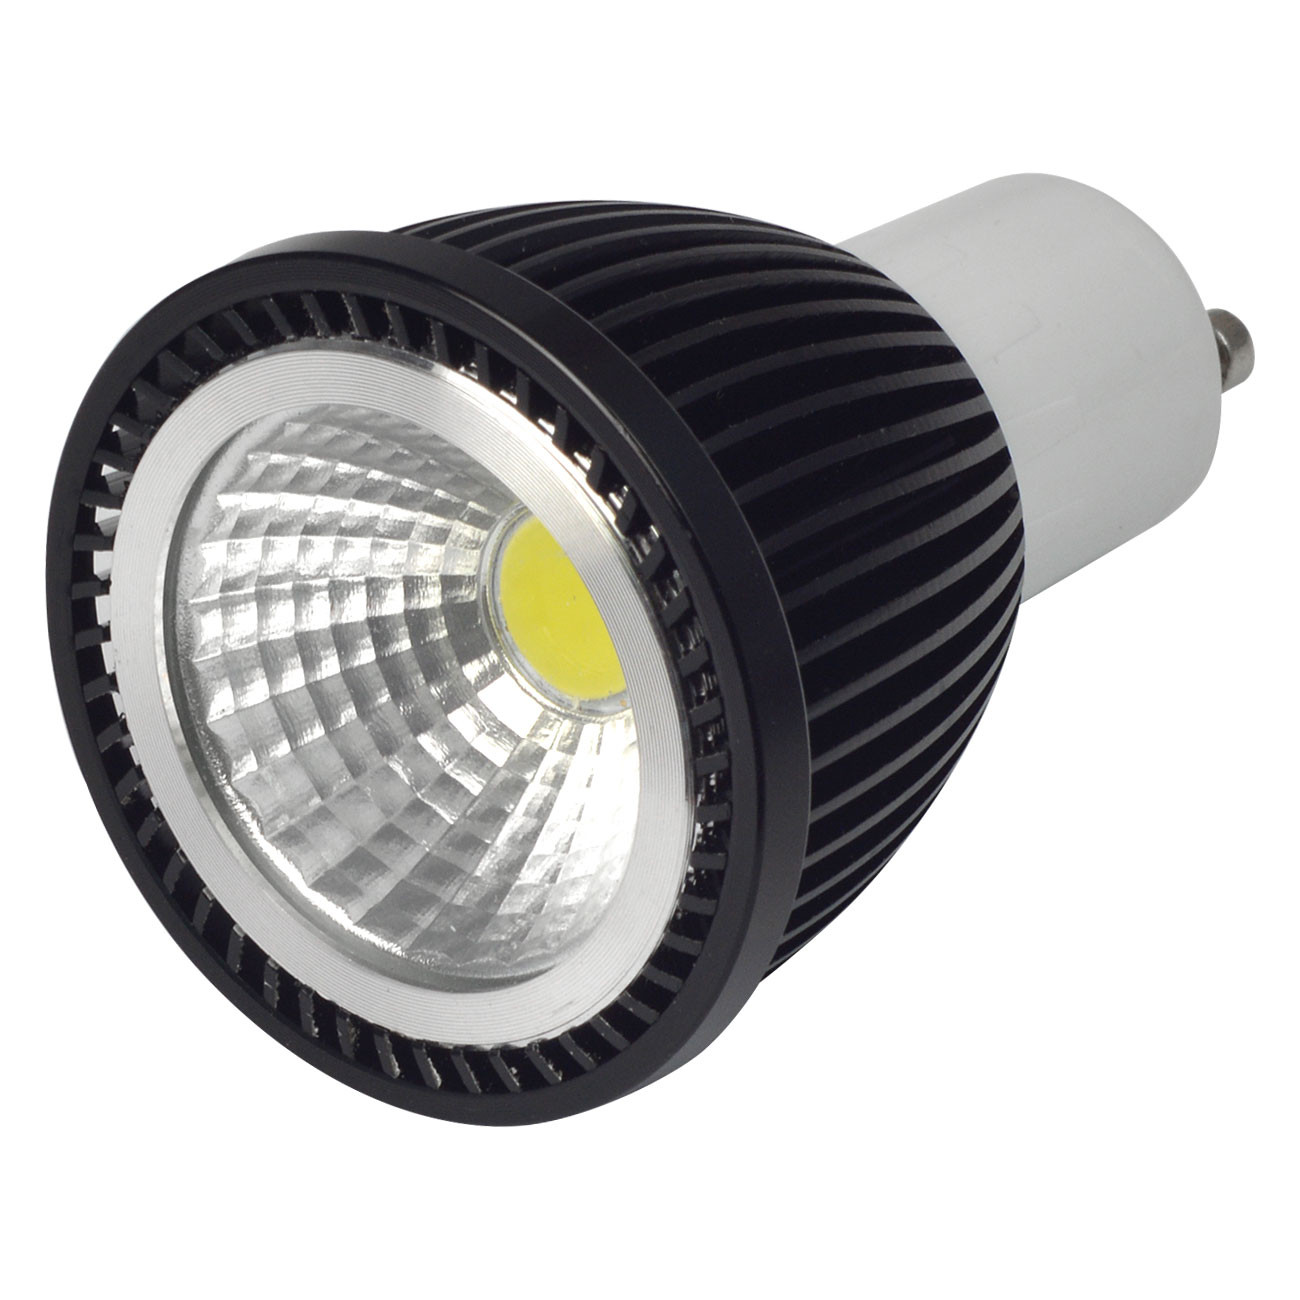 MENGS® GU10 5W LED Spotlight COB LED Bulb in Cool White Energy saving Lamp - 120°